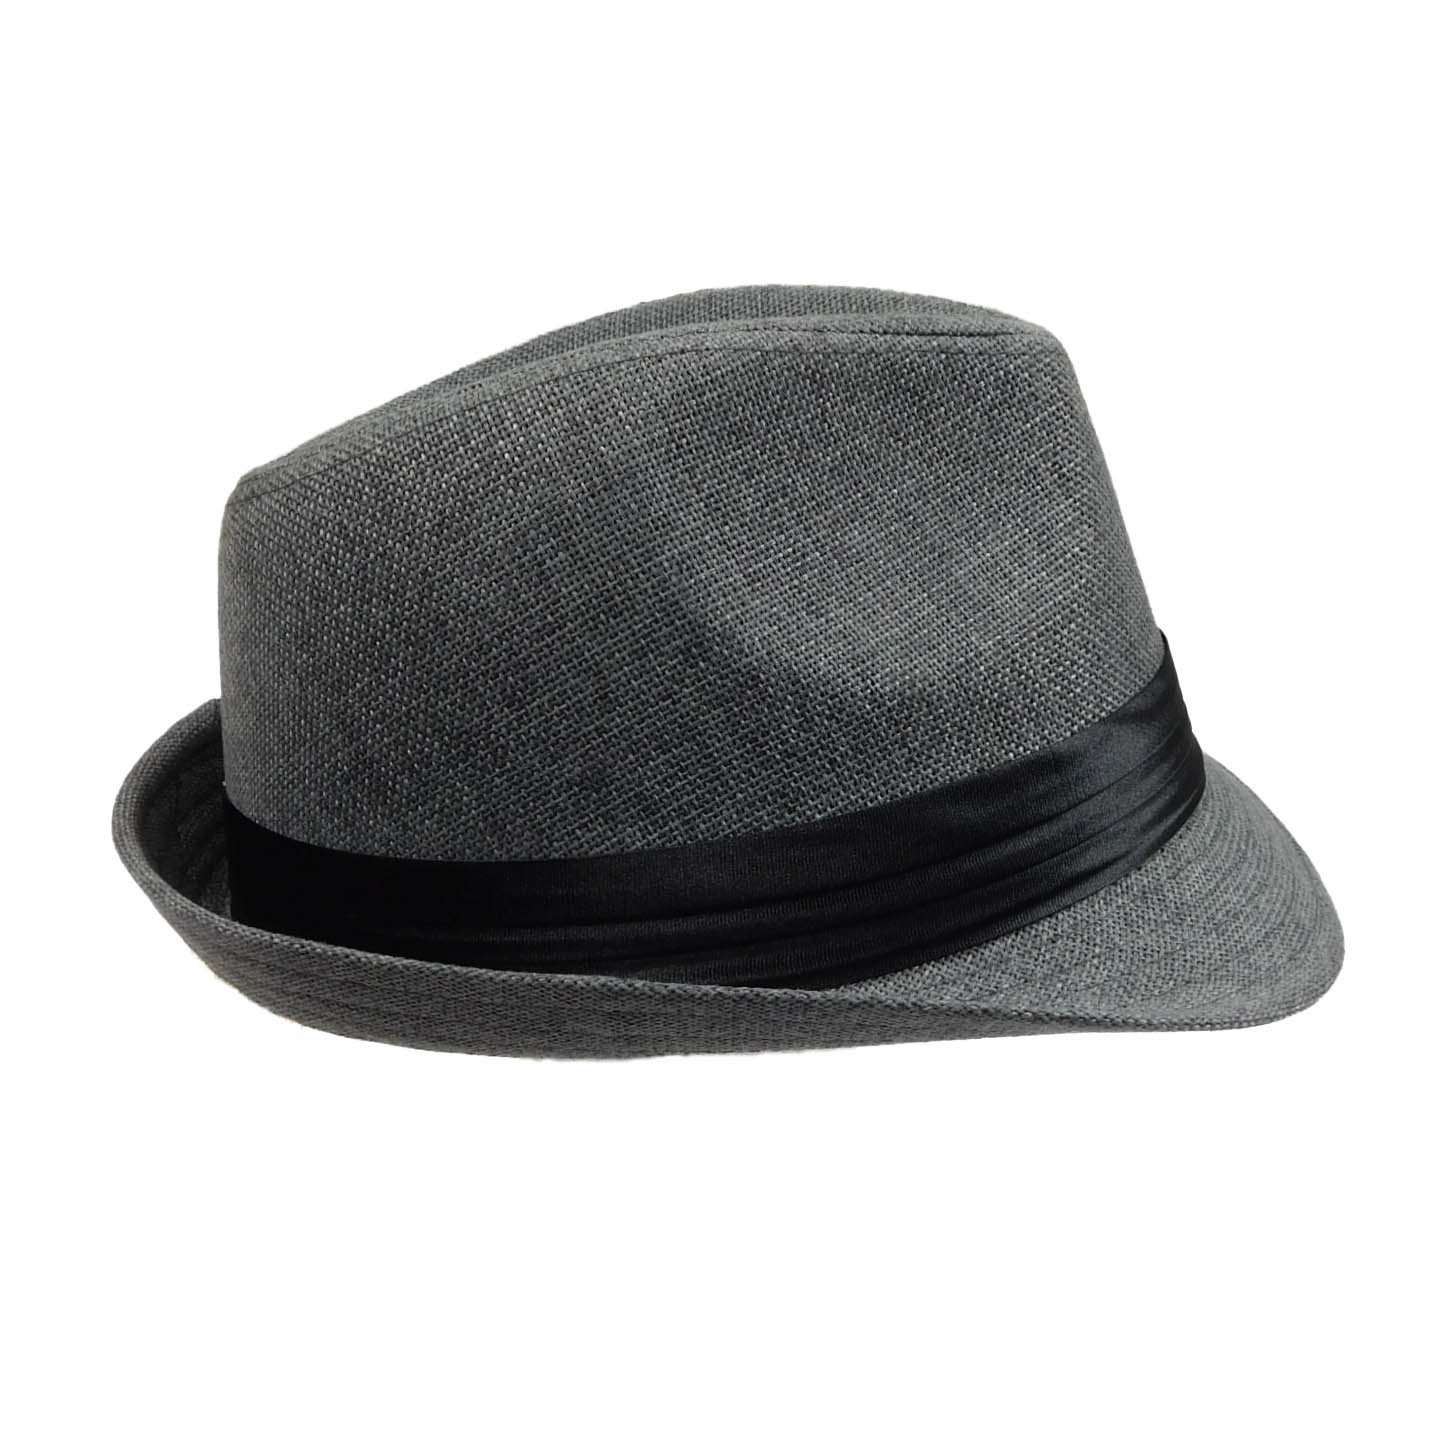 Grey Fedora with Satin Band - SetarTrading Hats